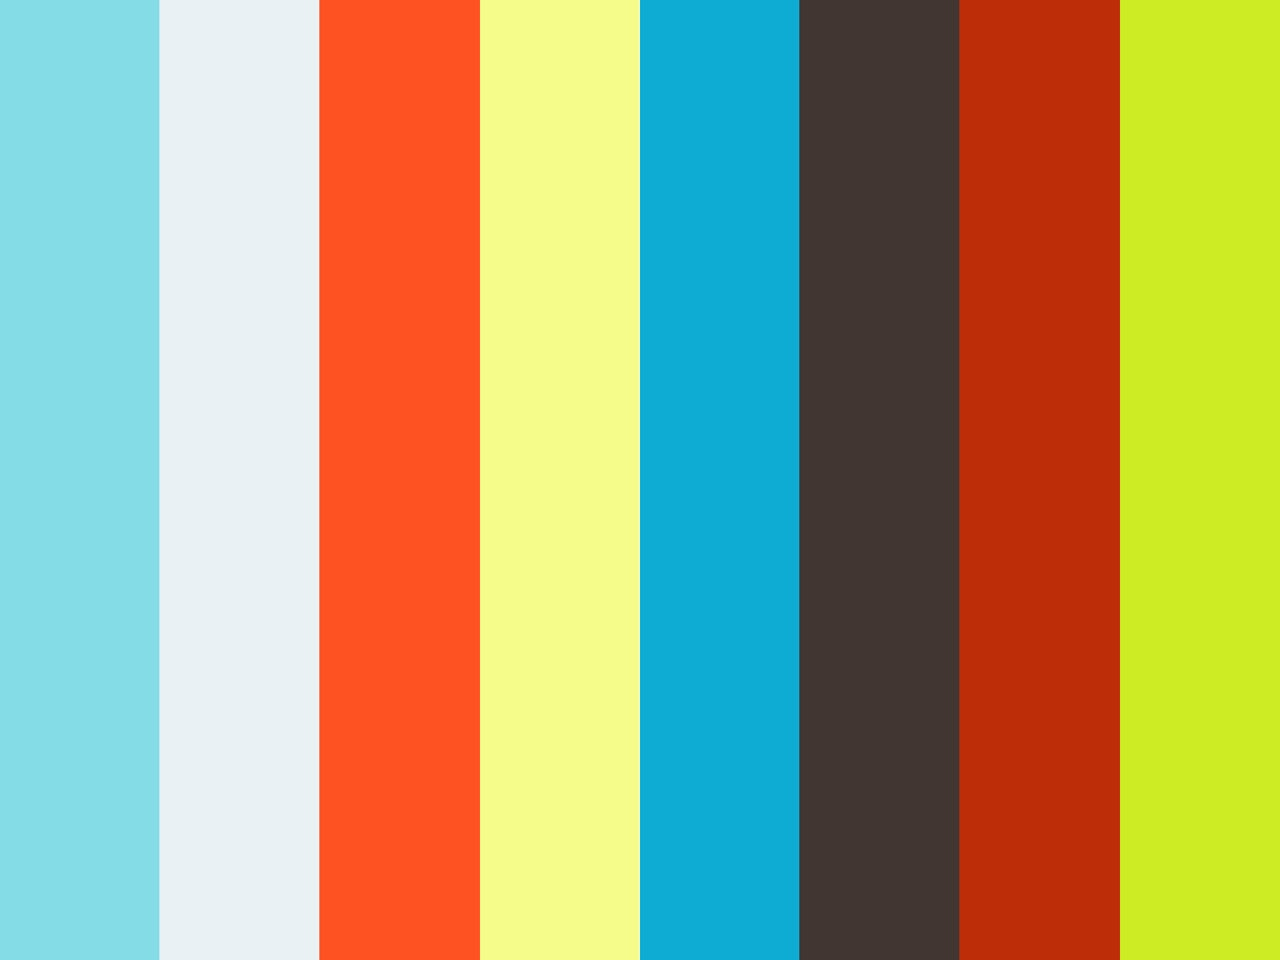 Dr.%20Jon%20Mendelsohn%20discusses%20the%20capillus%20mobile%20laser%20for%20thinning%20hair%20and%20hair%20loss